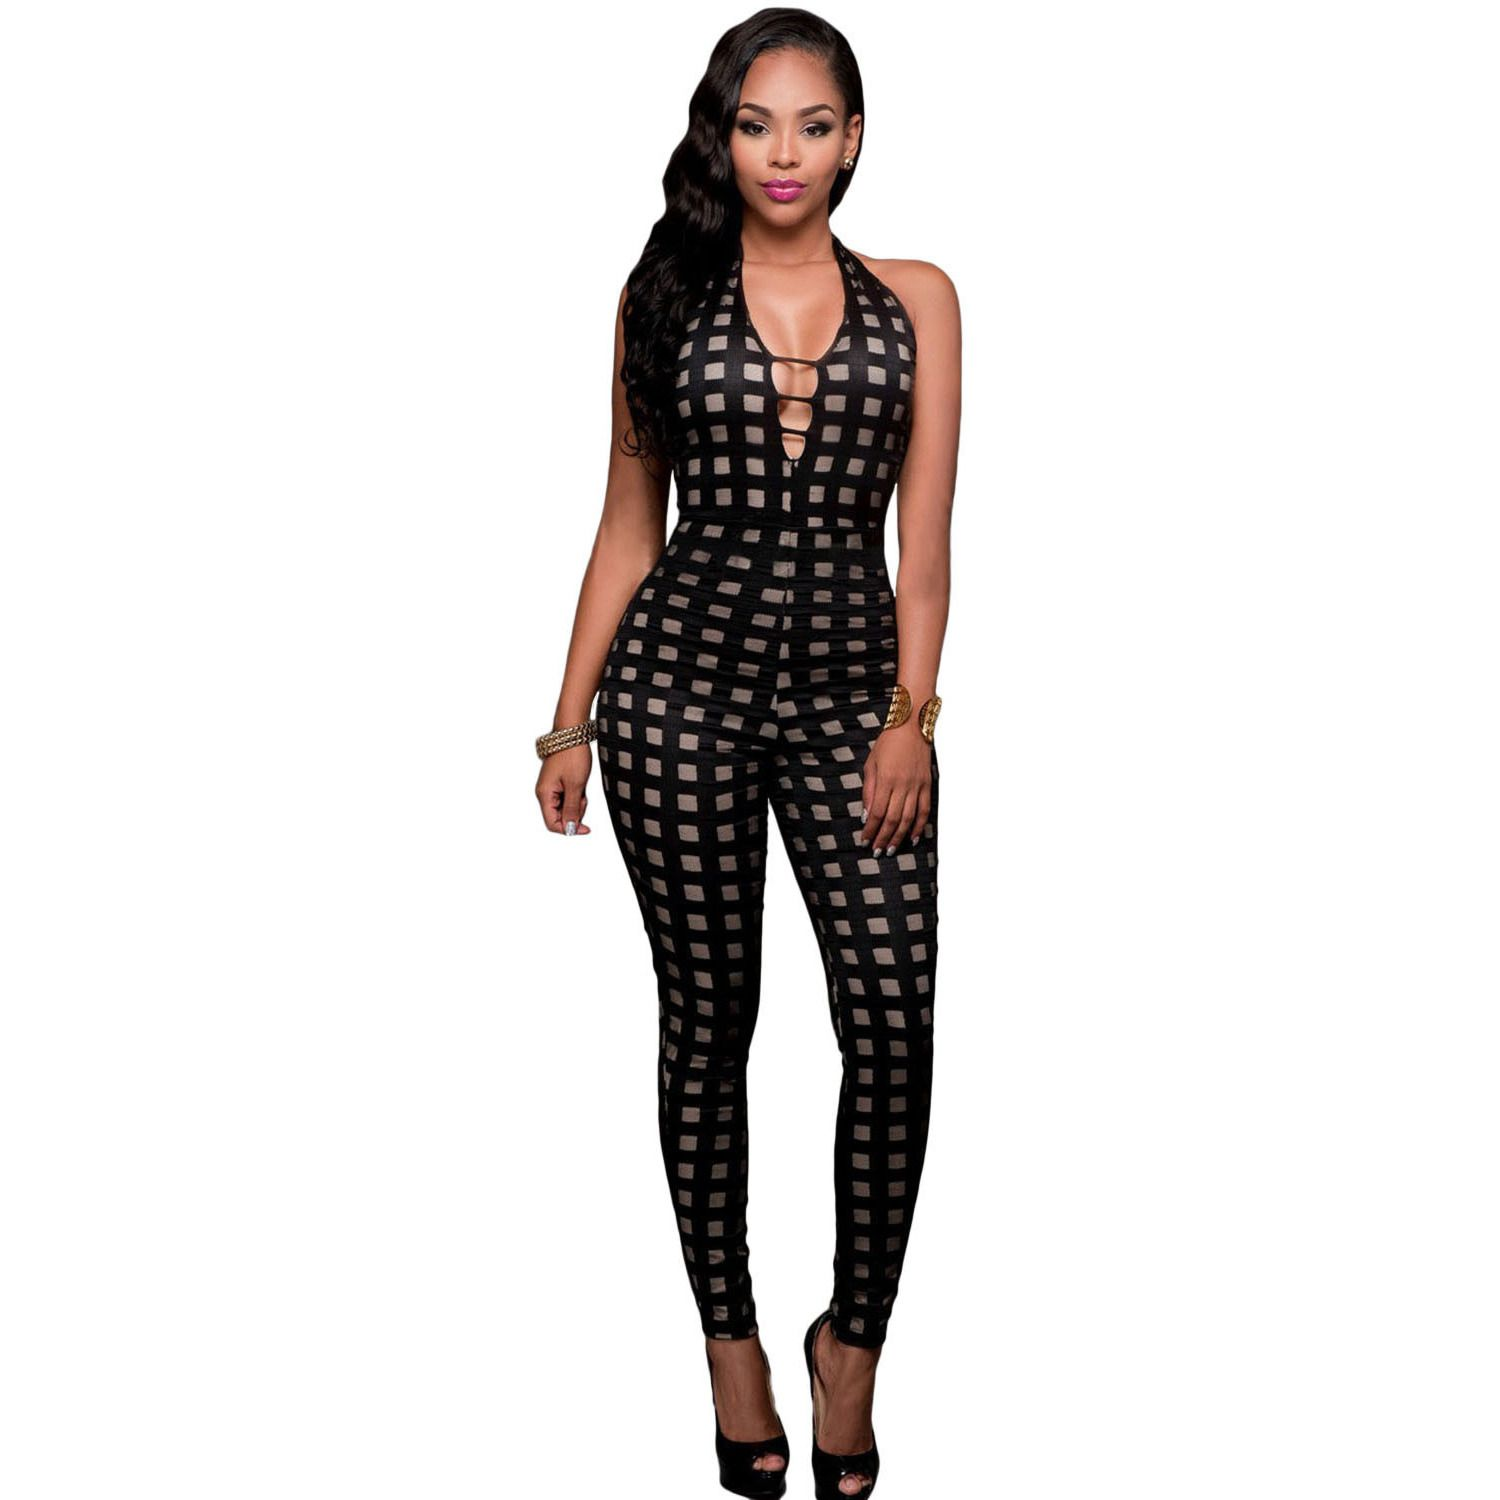 New Rompers Backless Women Jumpsuits 2016 Fashion Summer